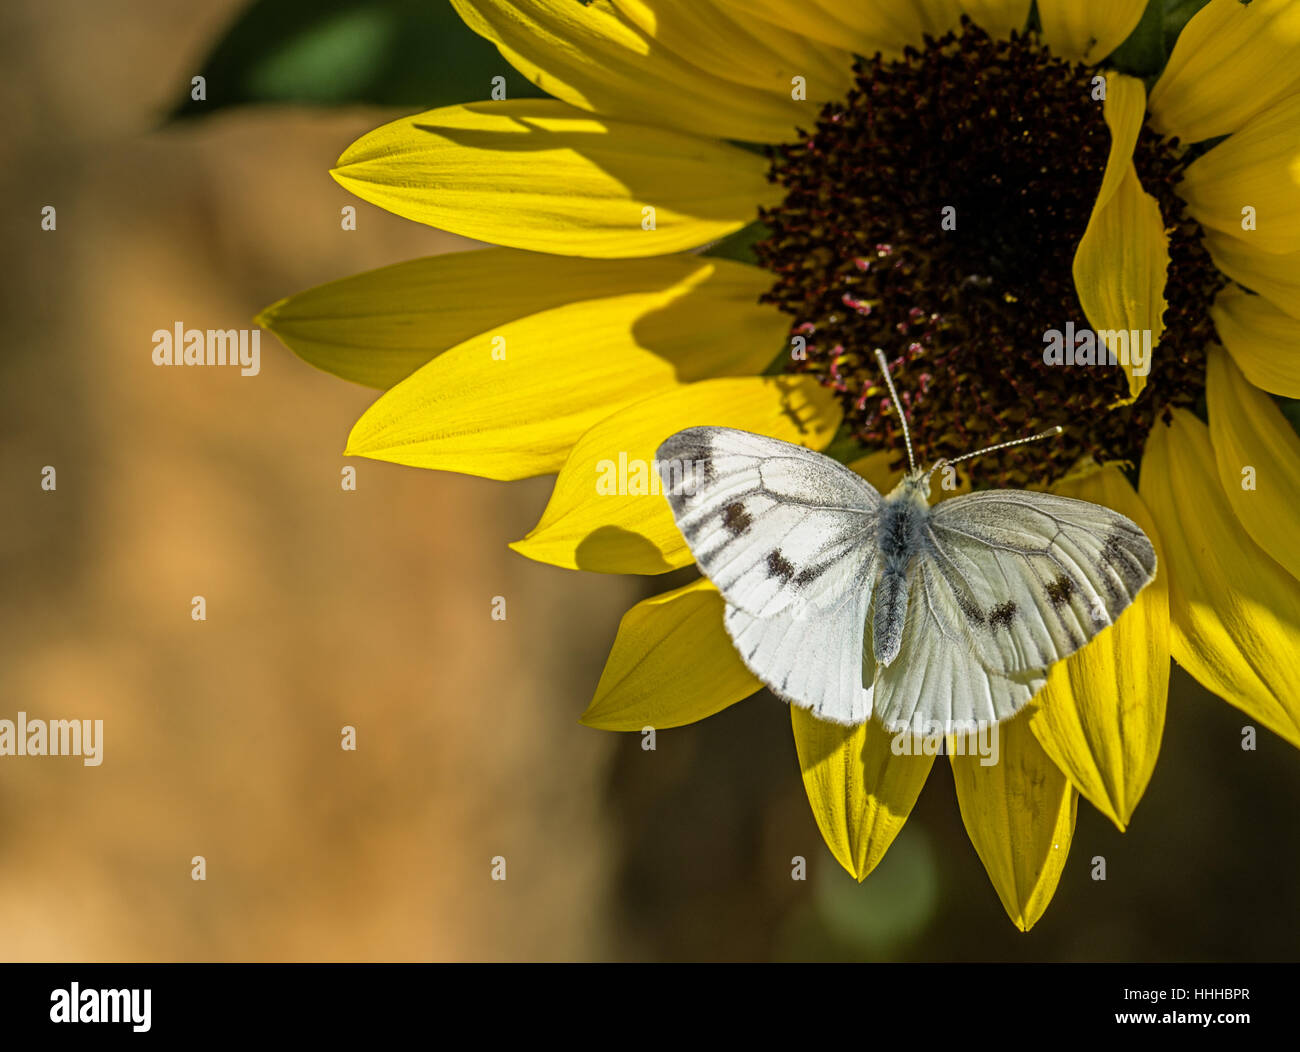 Flower plant butterfly sunflower moth cabbage white butterfly flower plant butterfly sunflower moth cabbage white butterfly yellow mightylinksfo